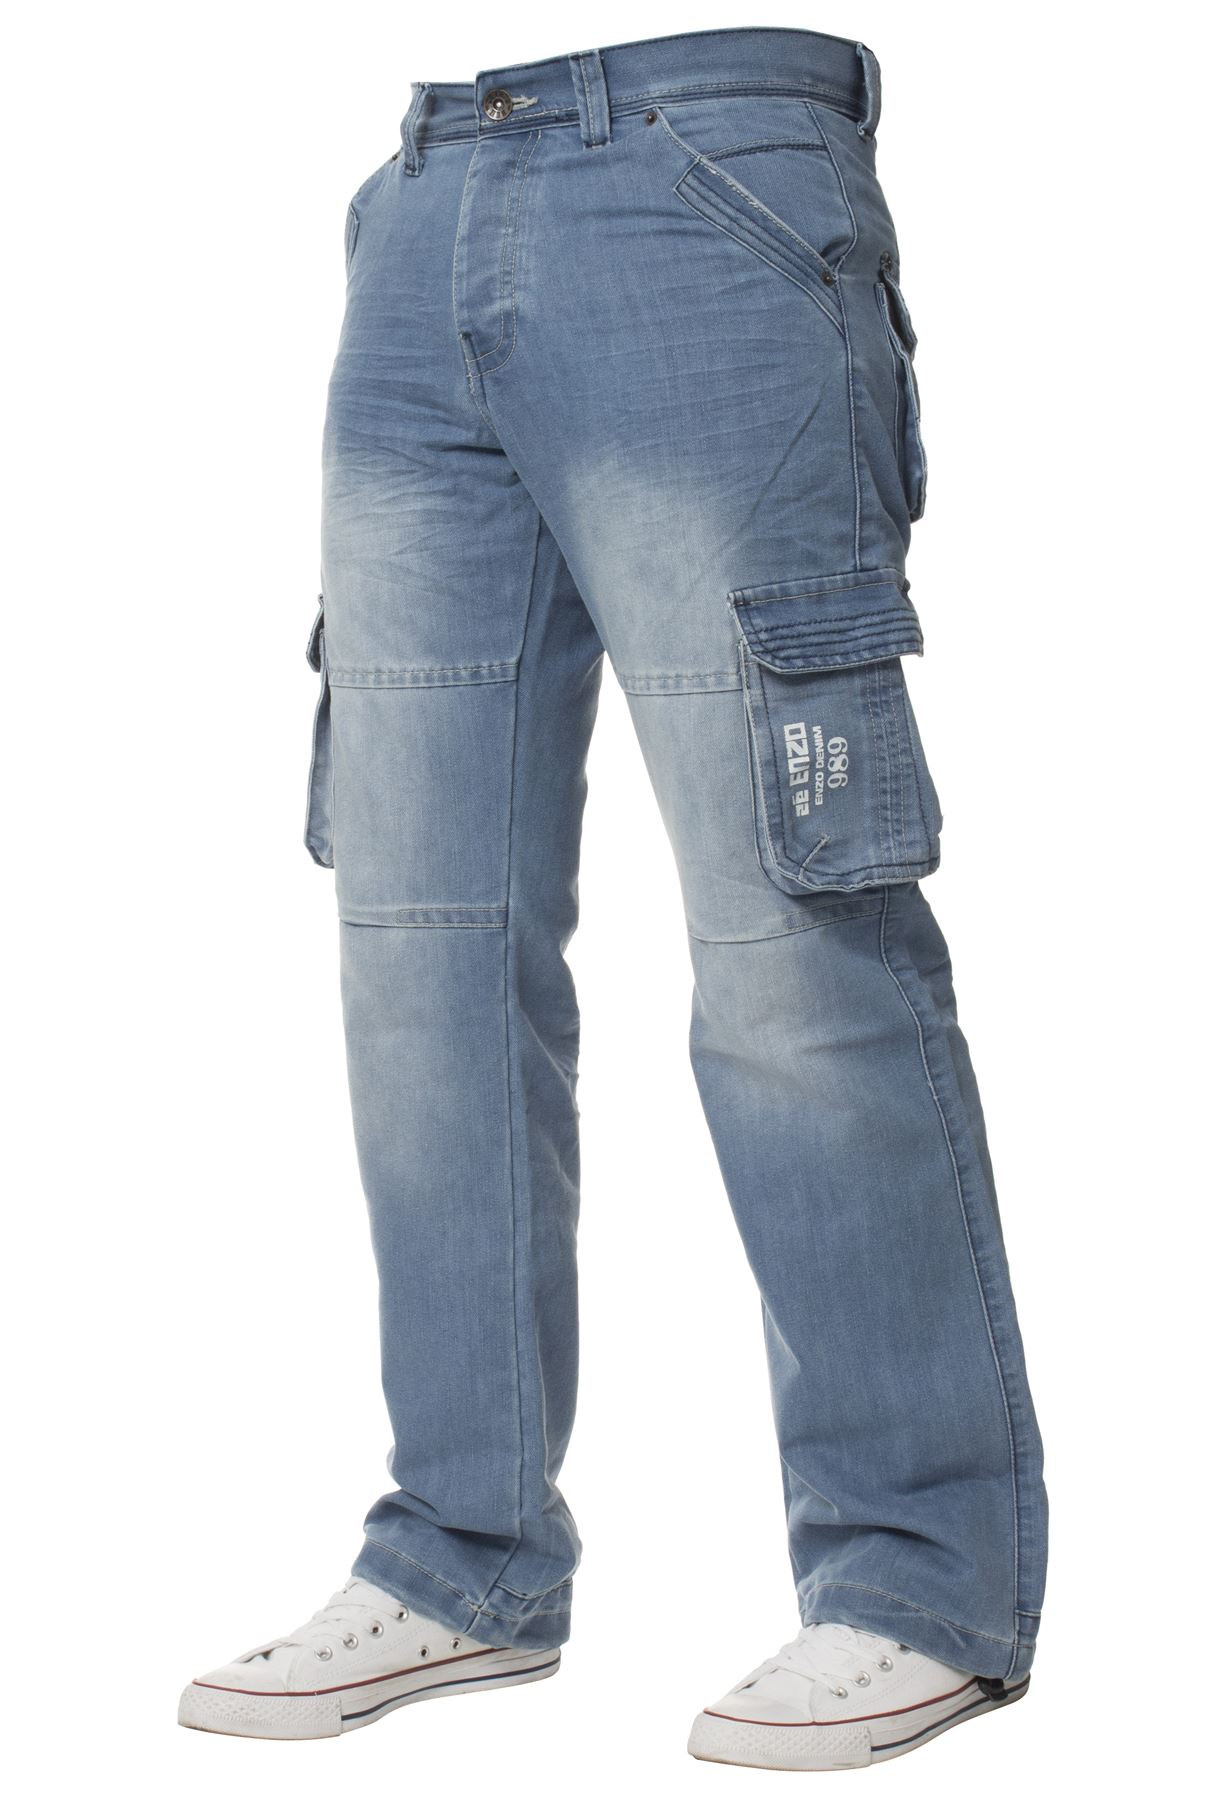 Enzo-Mens-Cargo-Combat-Trousers-Jeans-Work-Casual-Denim-Pants-Big-Tall-All-Waist thumbnail 13